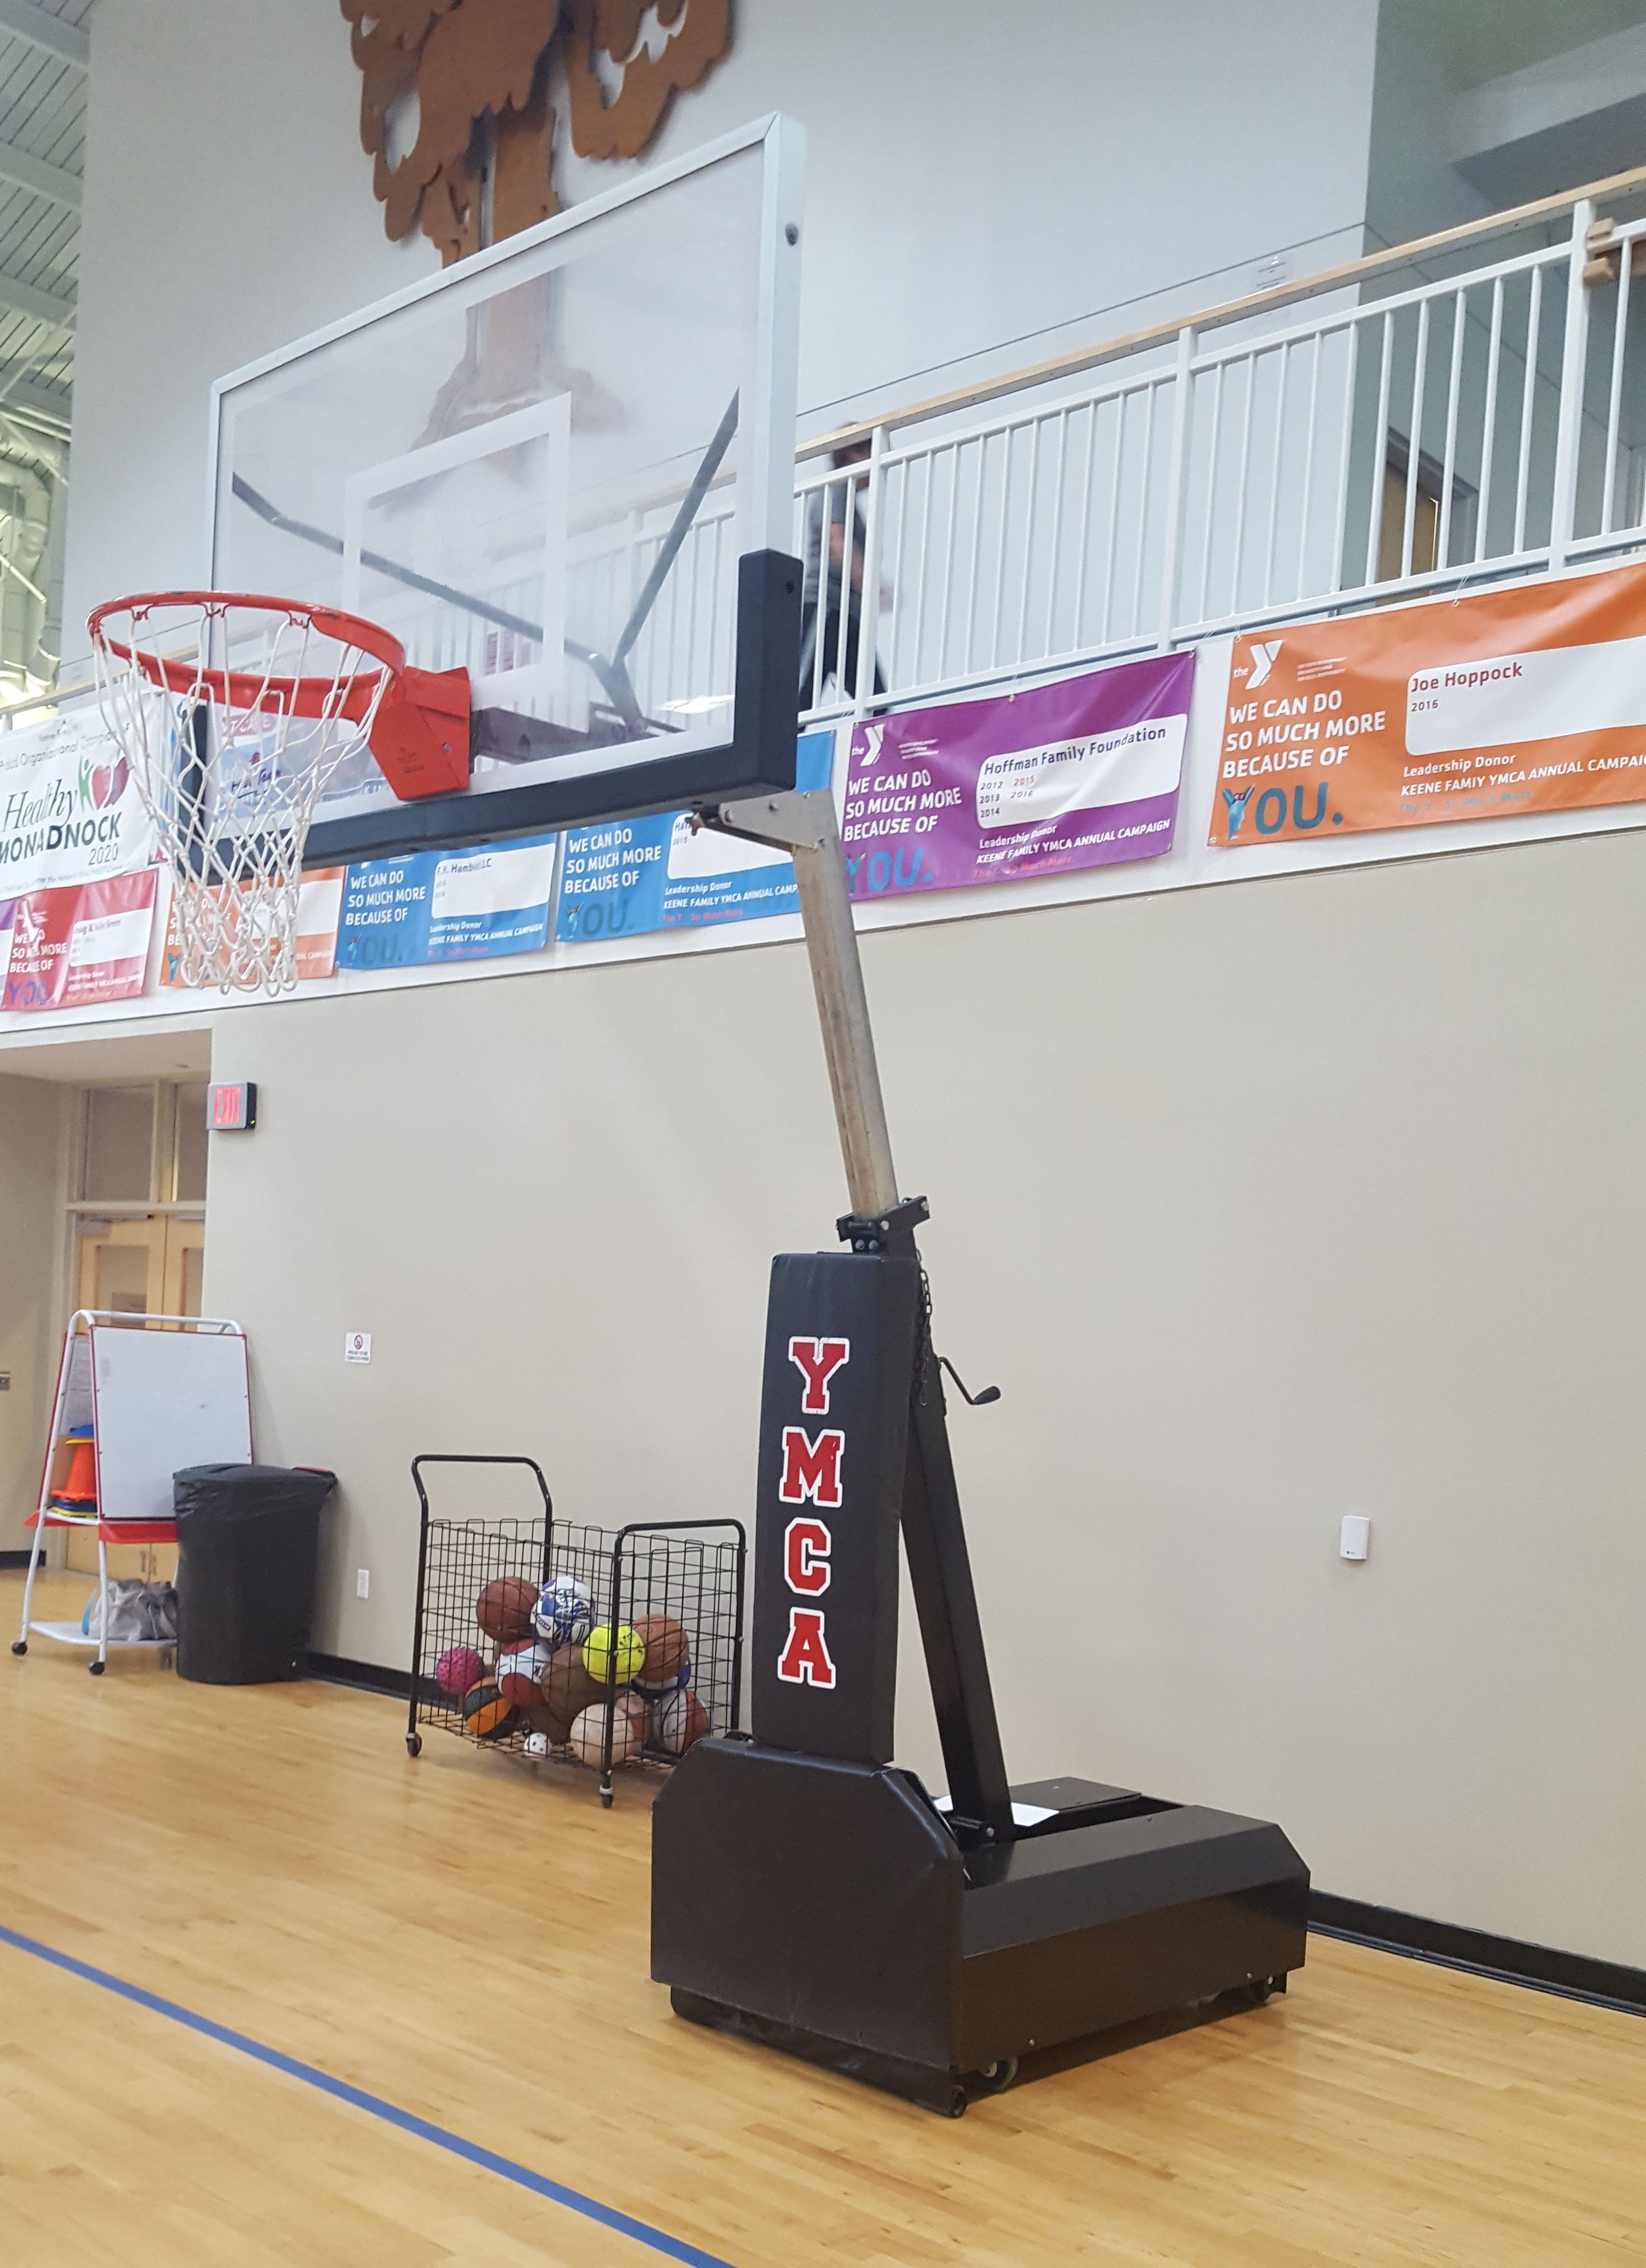 first team s fury select portable basketball goal installed at a